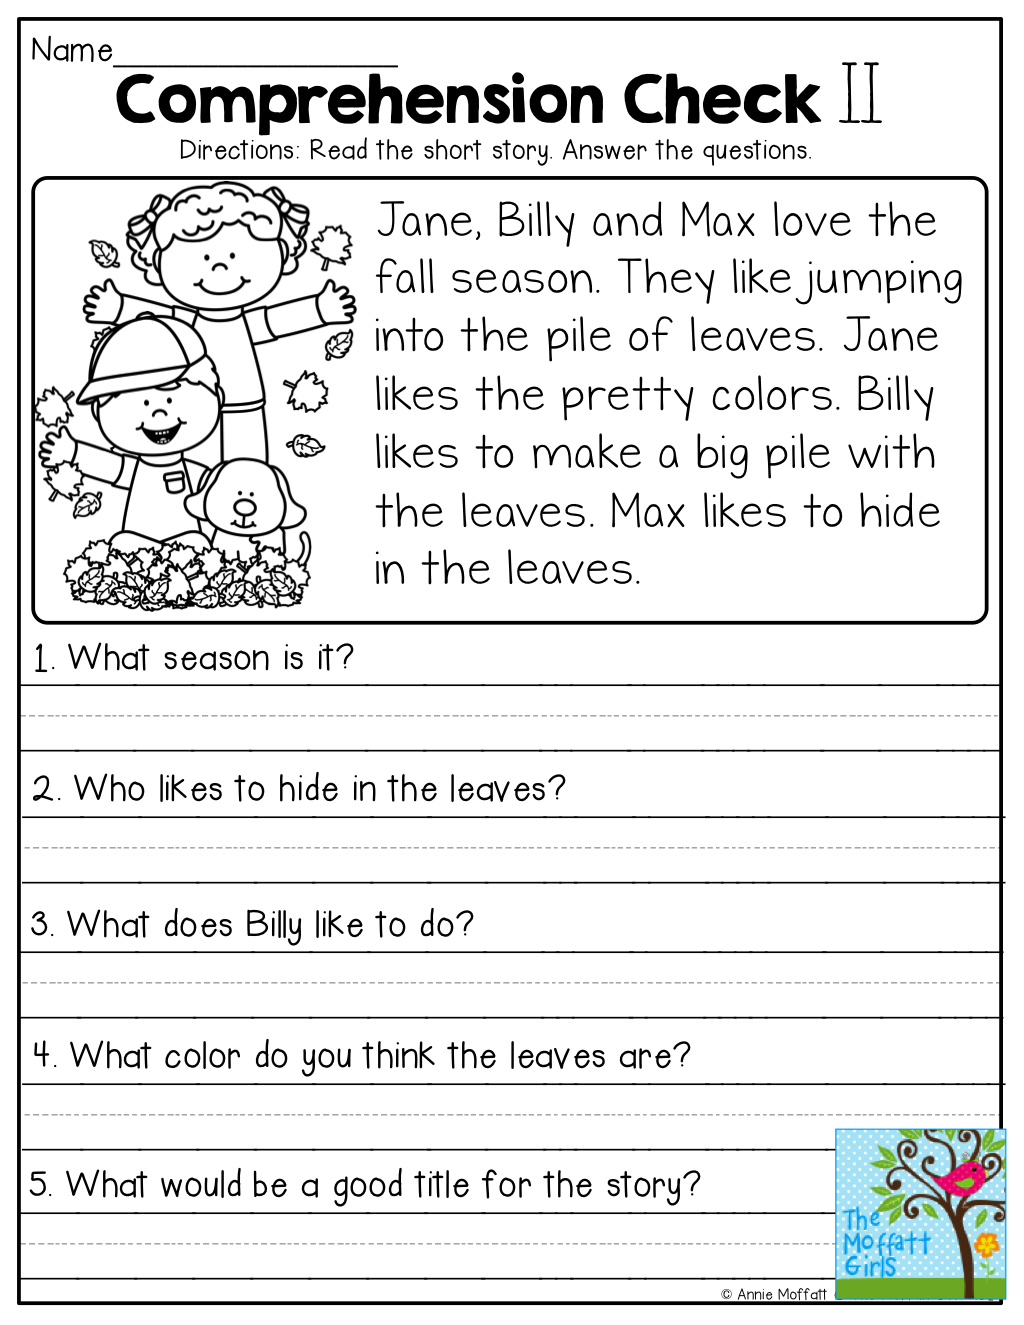 Worksheet Comprehension Check Worksheets 1000 images about listening comprehension on pinterest activities and student centered resources